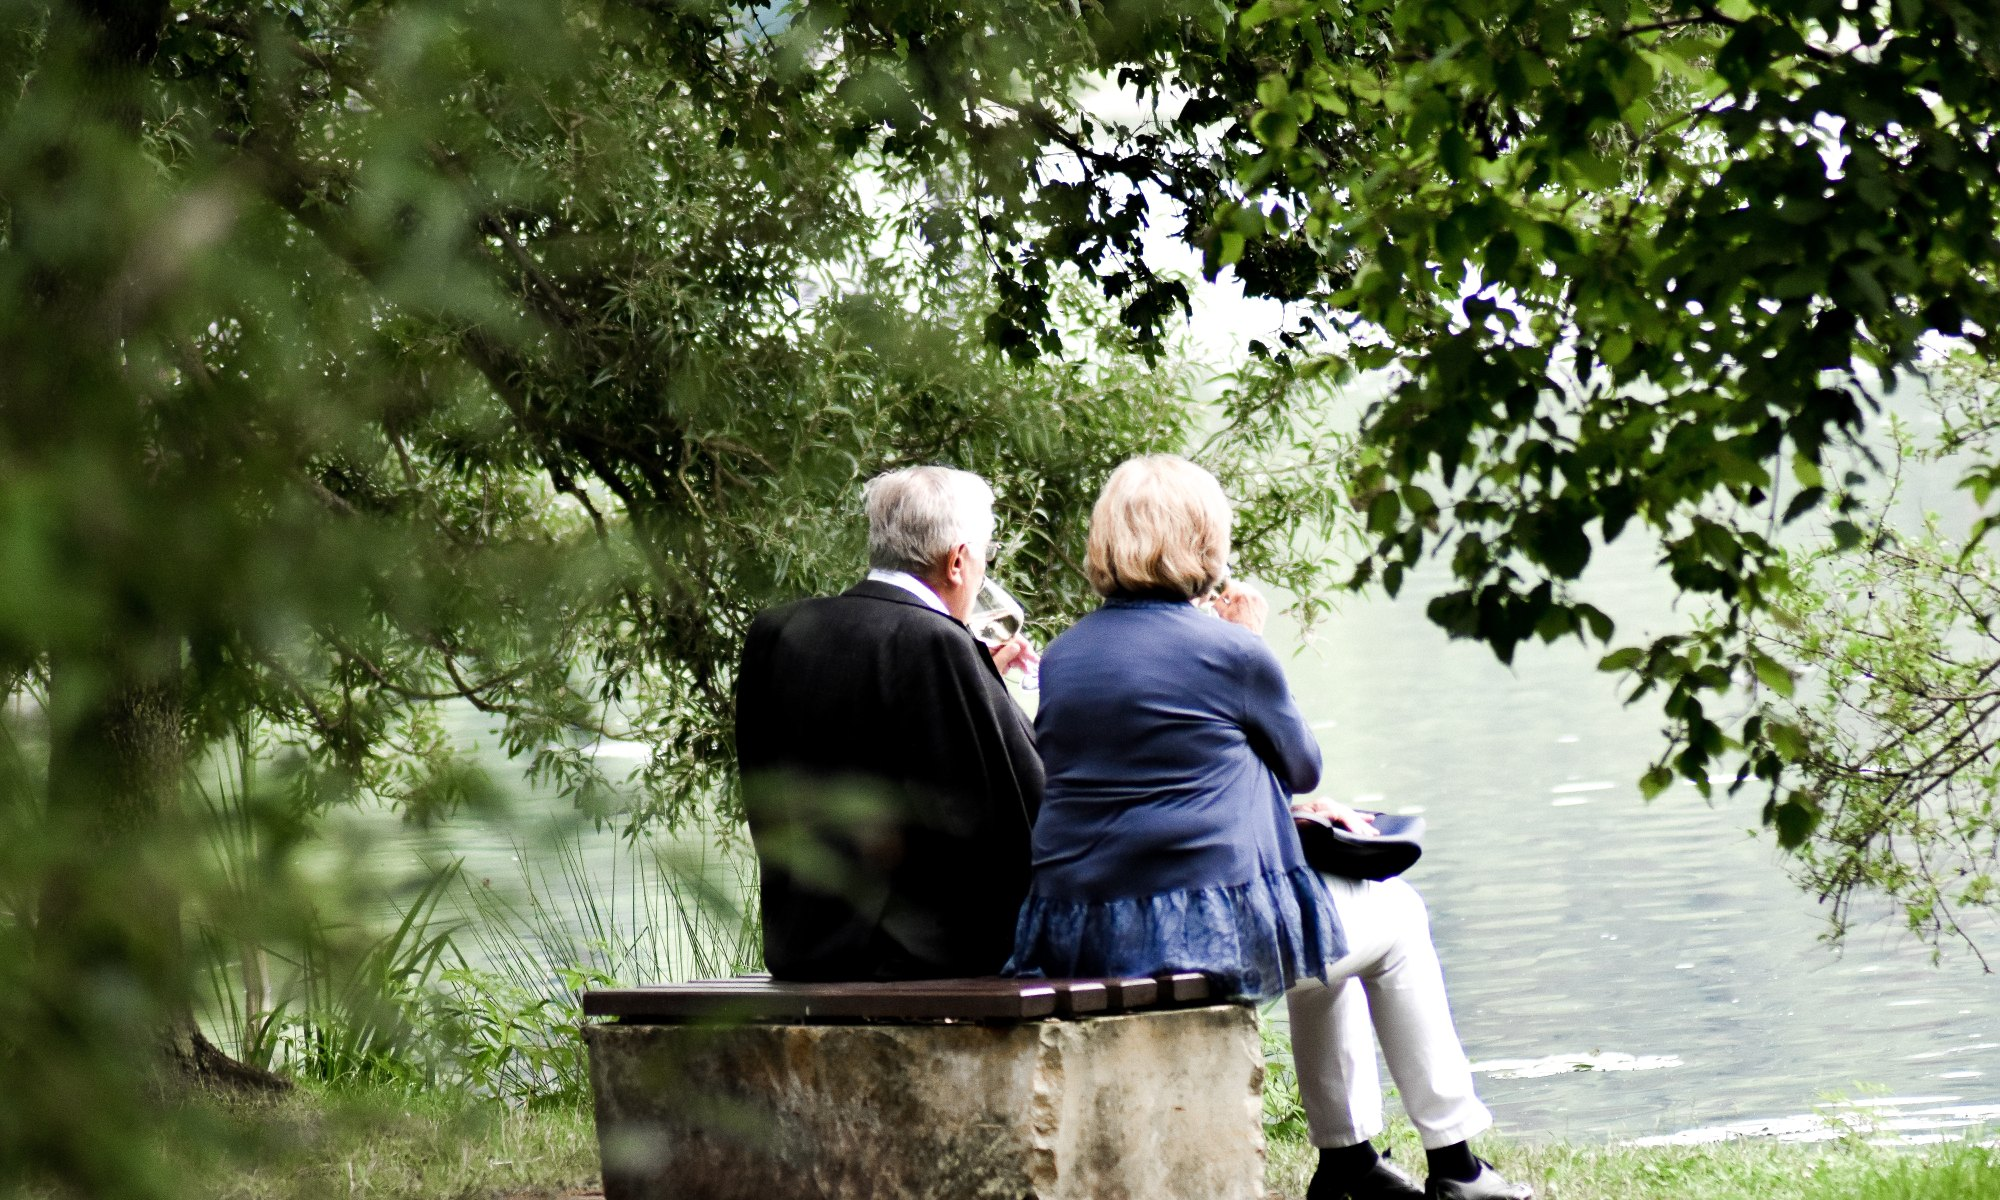 Parents sitting on pavement looking at body of water